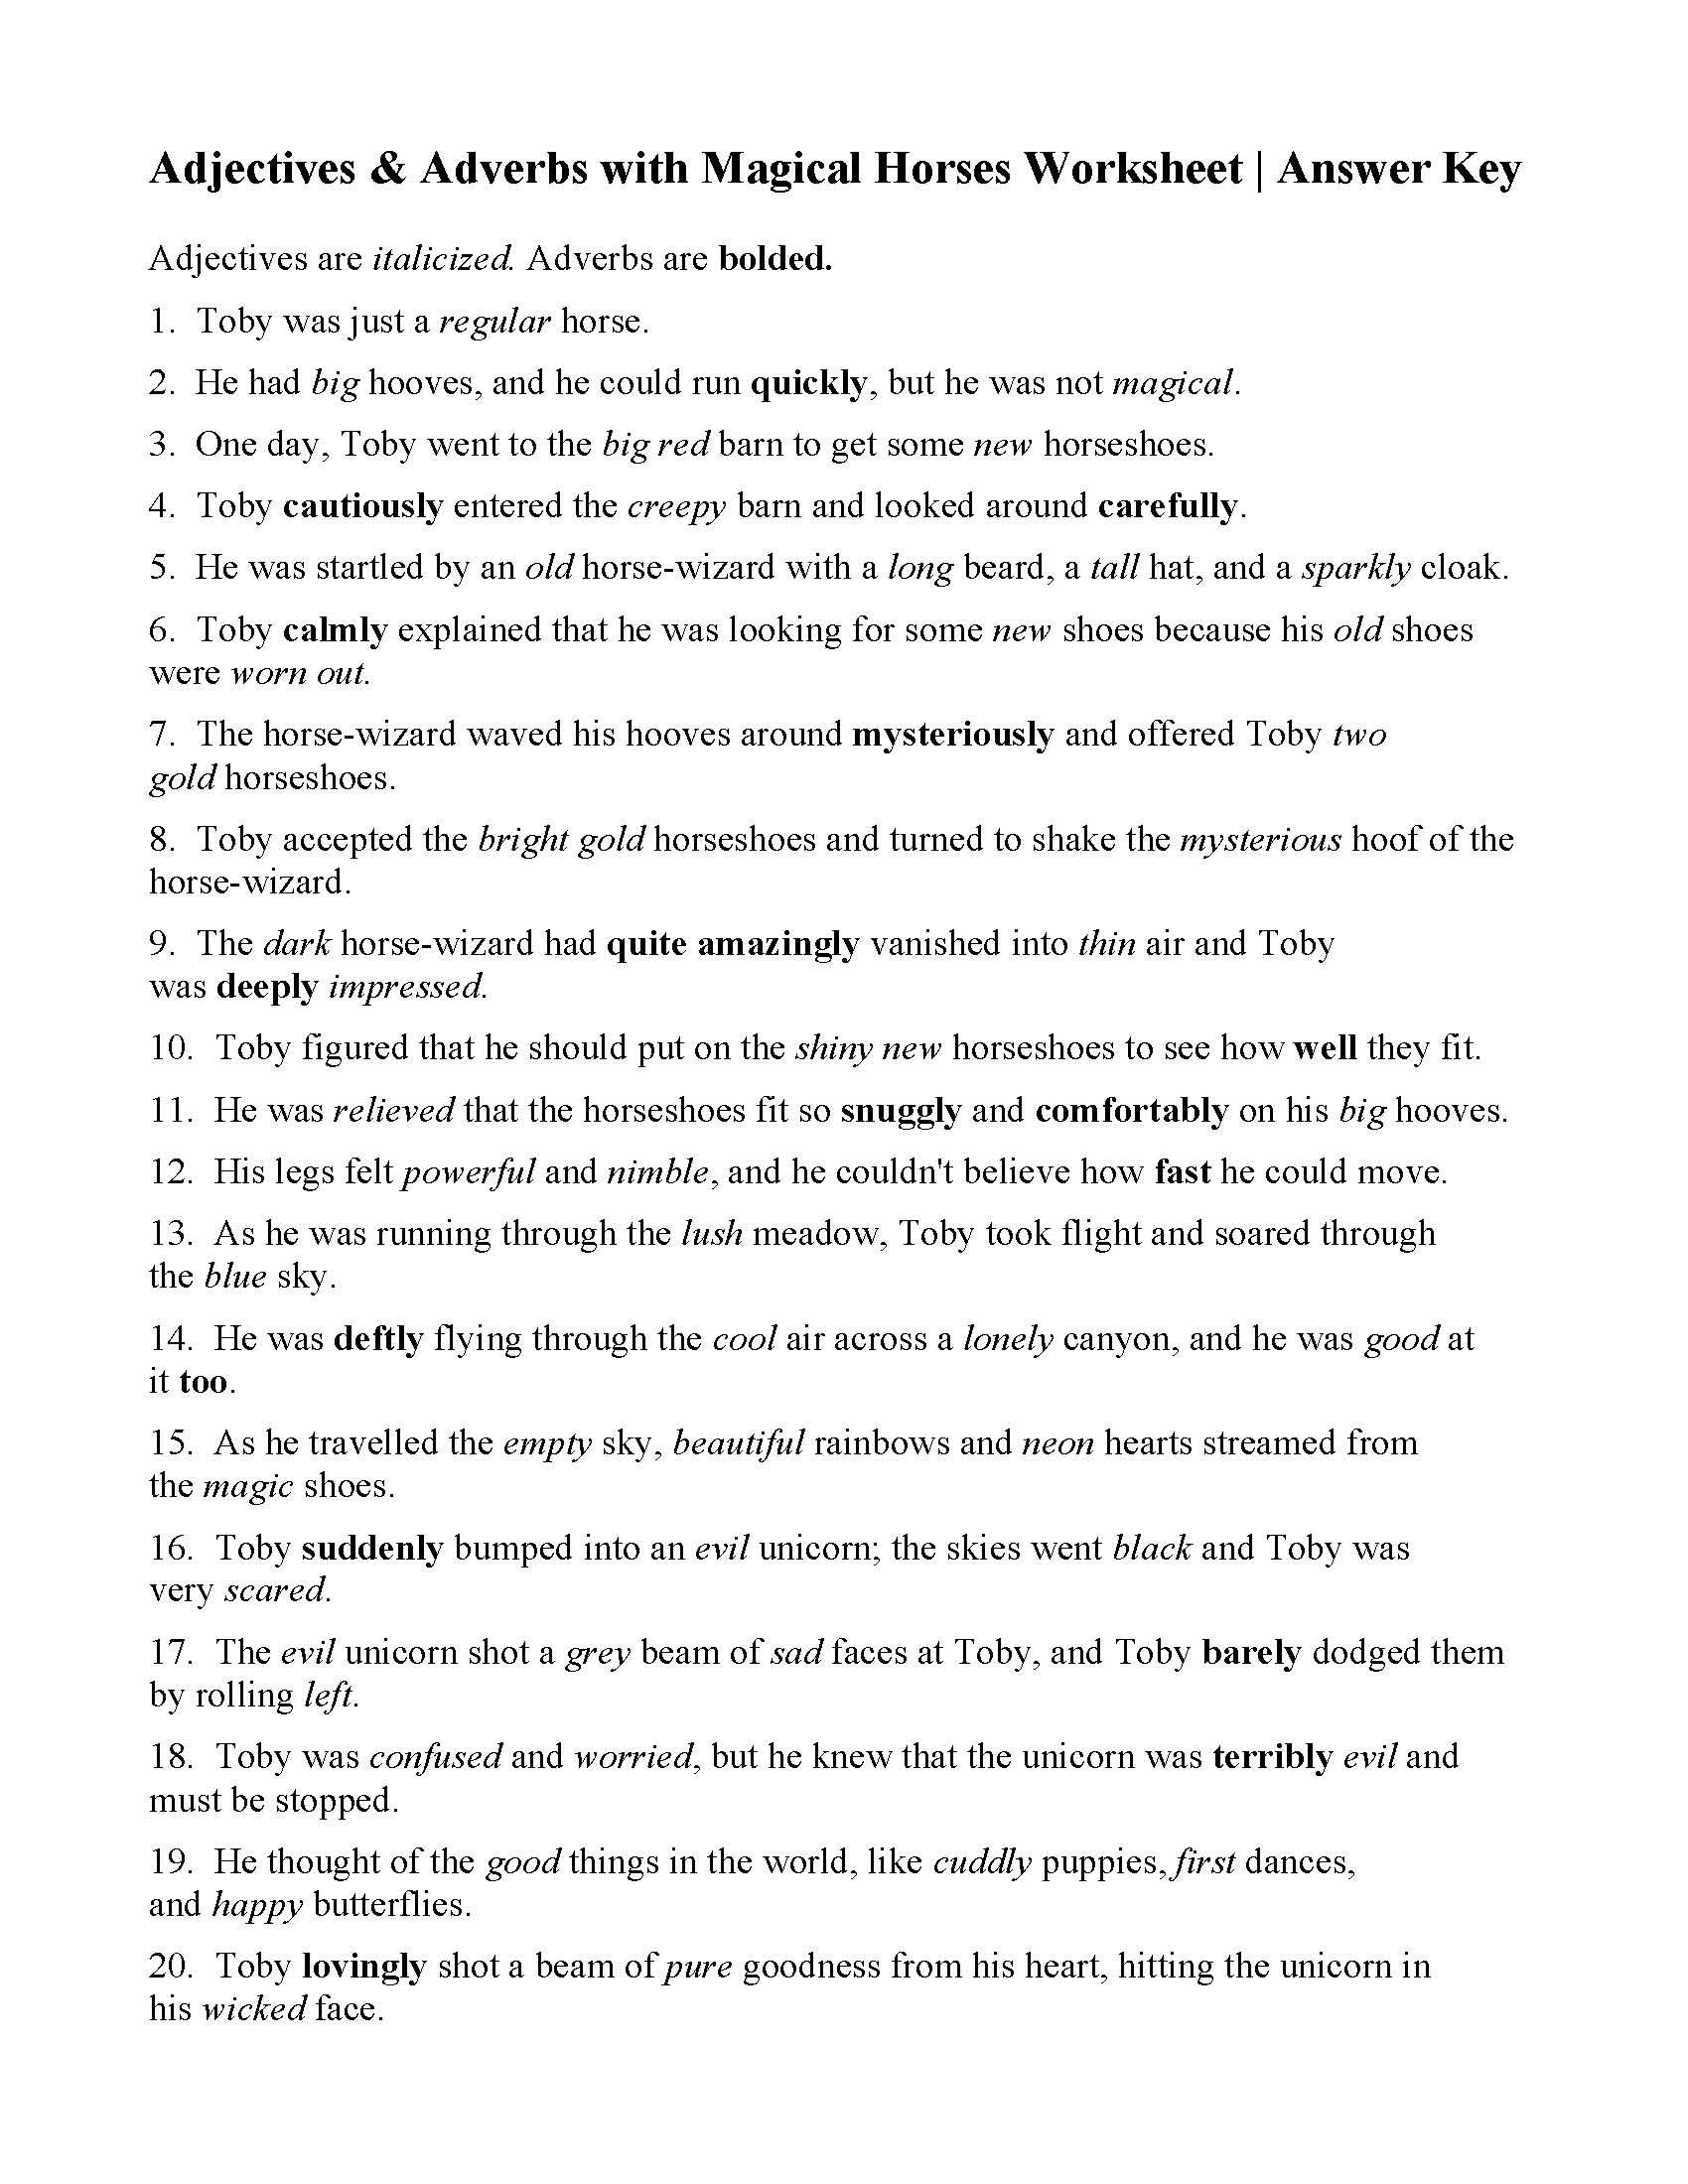 medium resolution of This is the answer key for the Adjectives and Adverbs with Magical Horses  Worksheet.   Adjectives